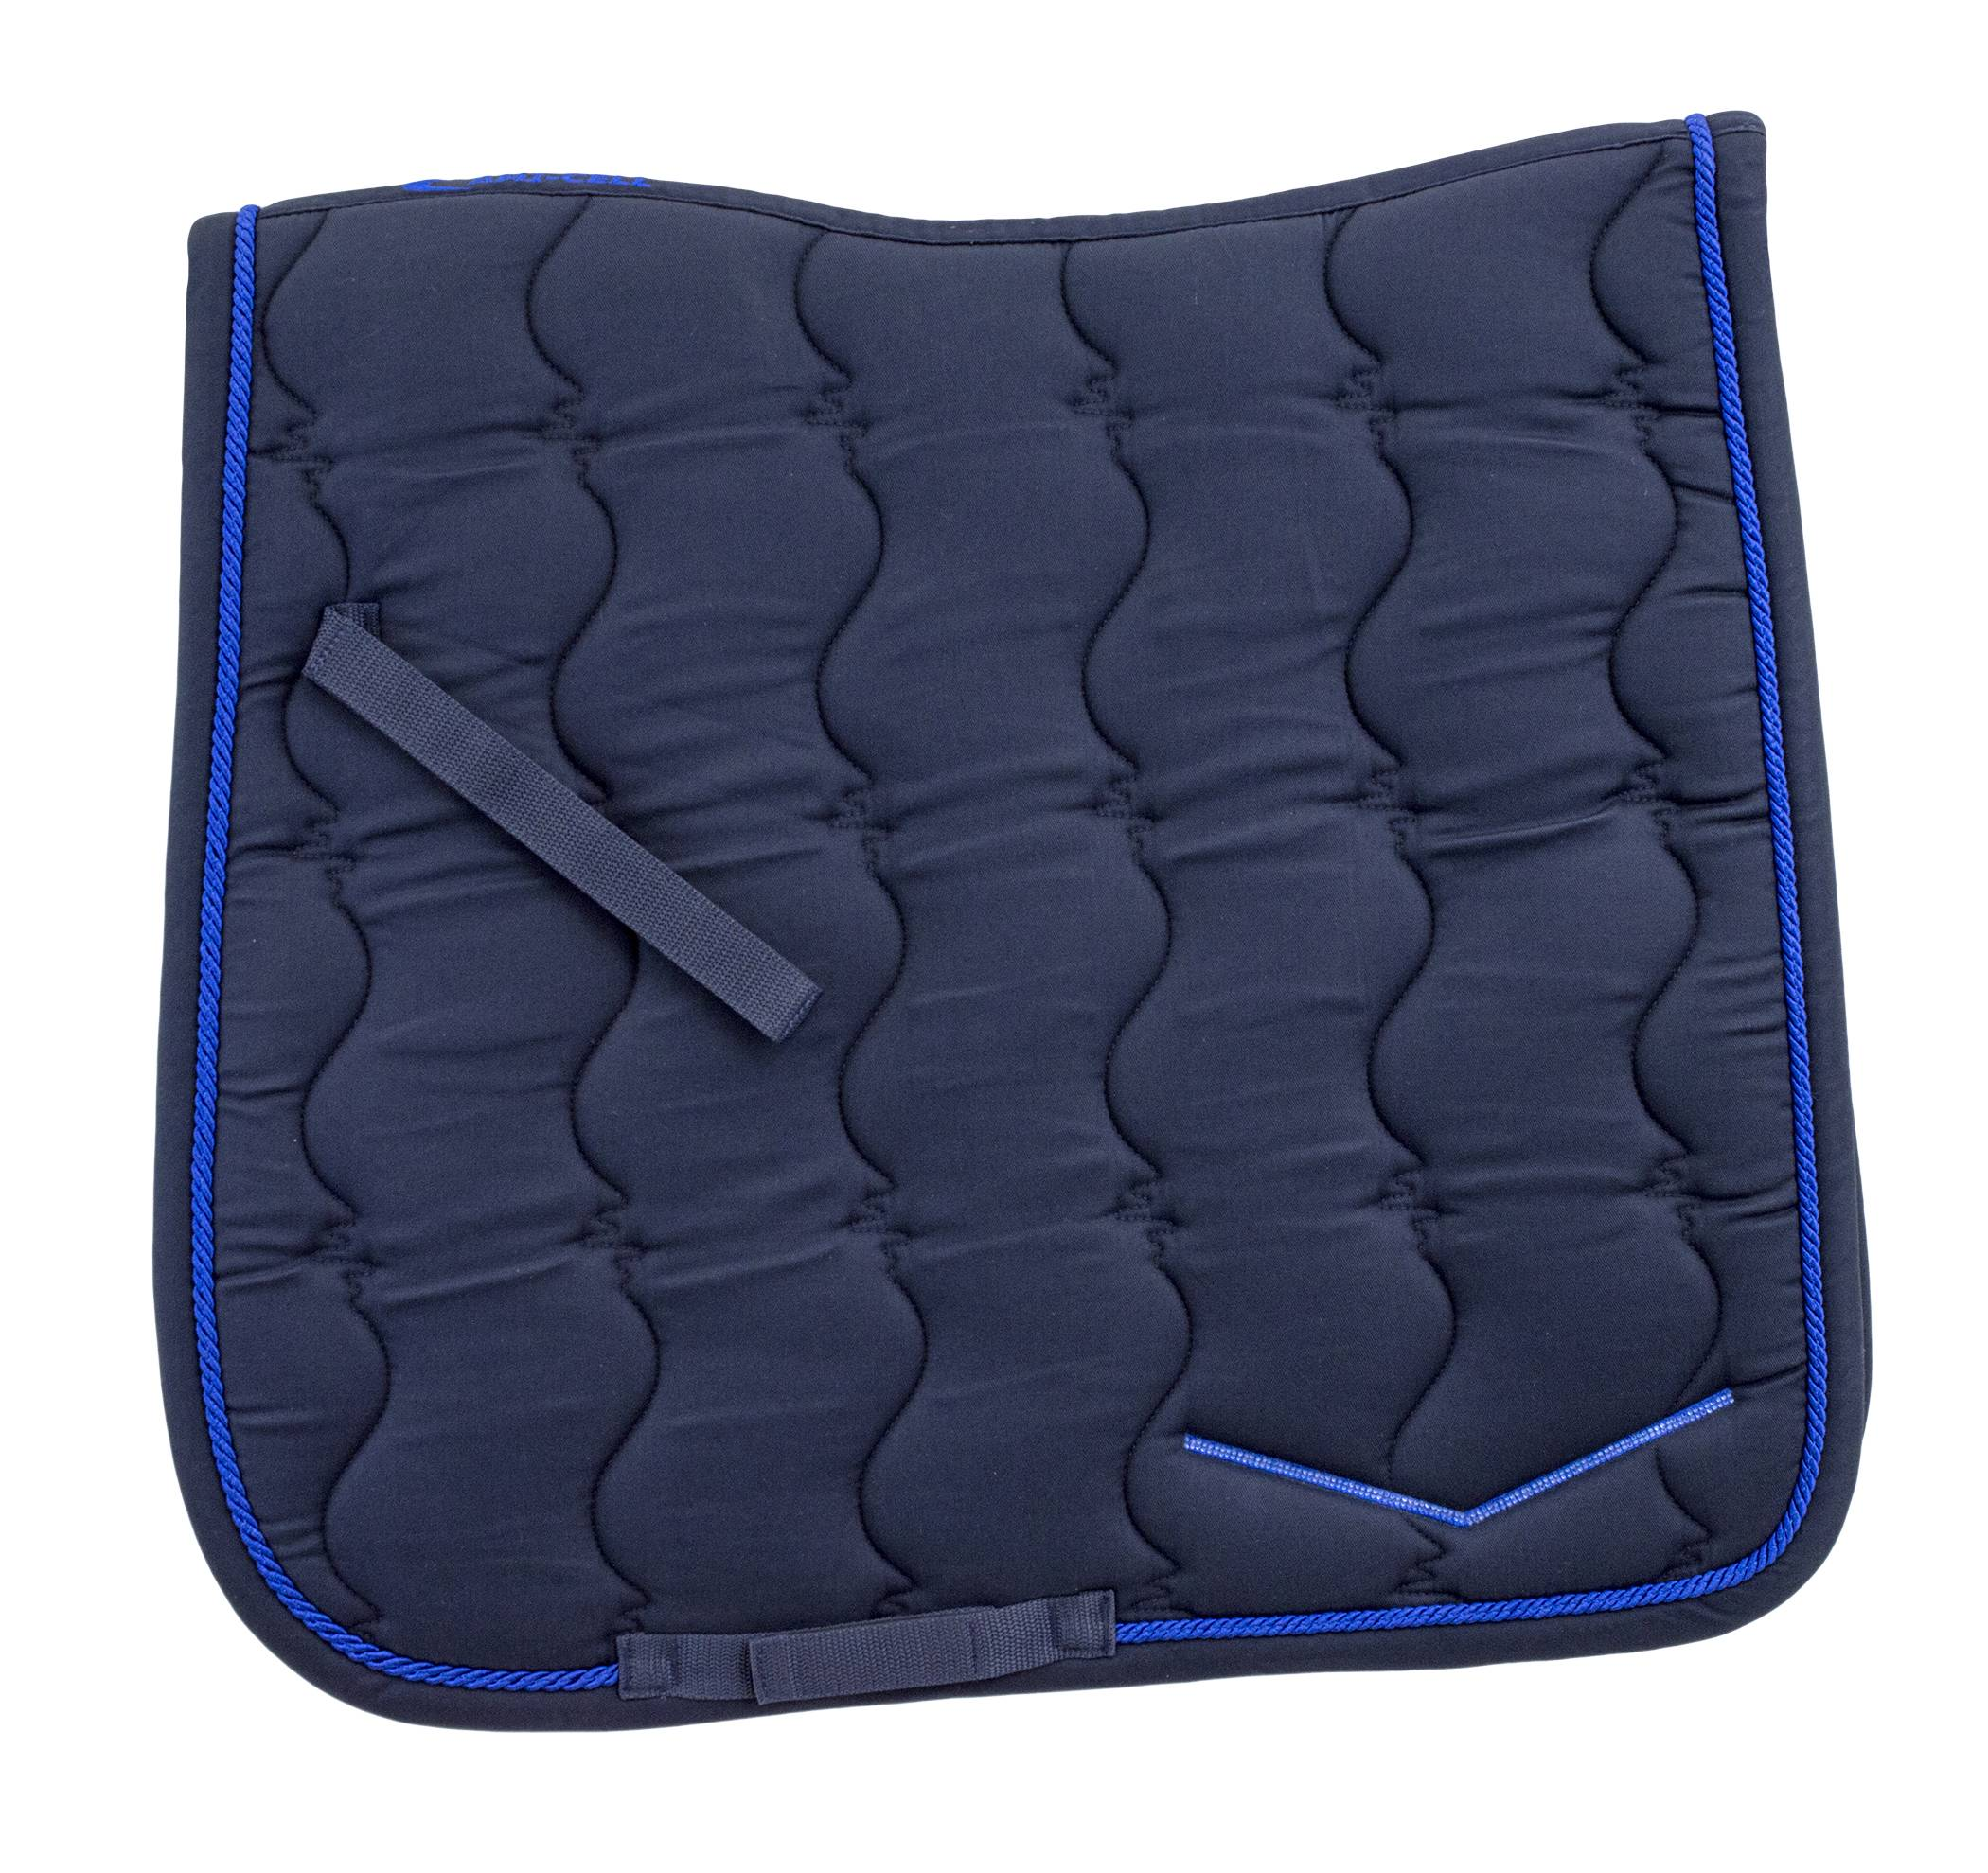 Lami Cell Crysal Black Dressage Saddle Pad Full Horse Size Tack Saddles Accessories